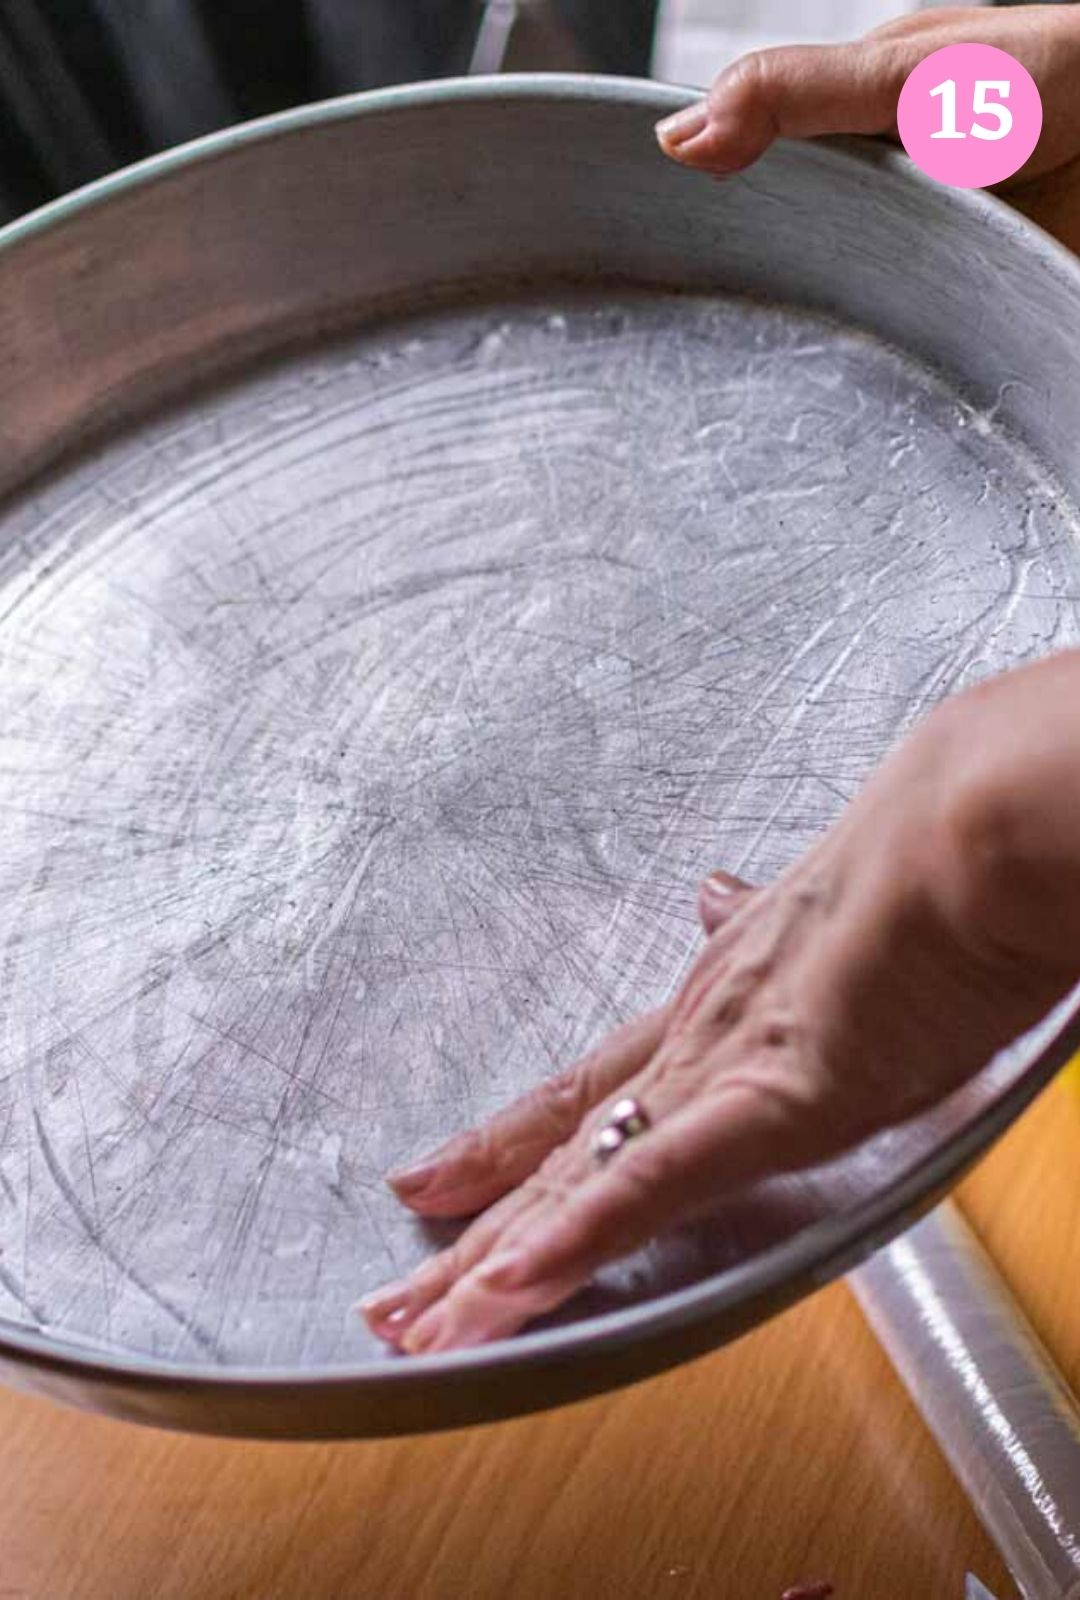 Greasing baking tray with oil